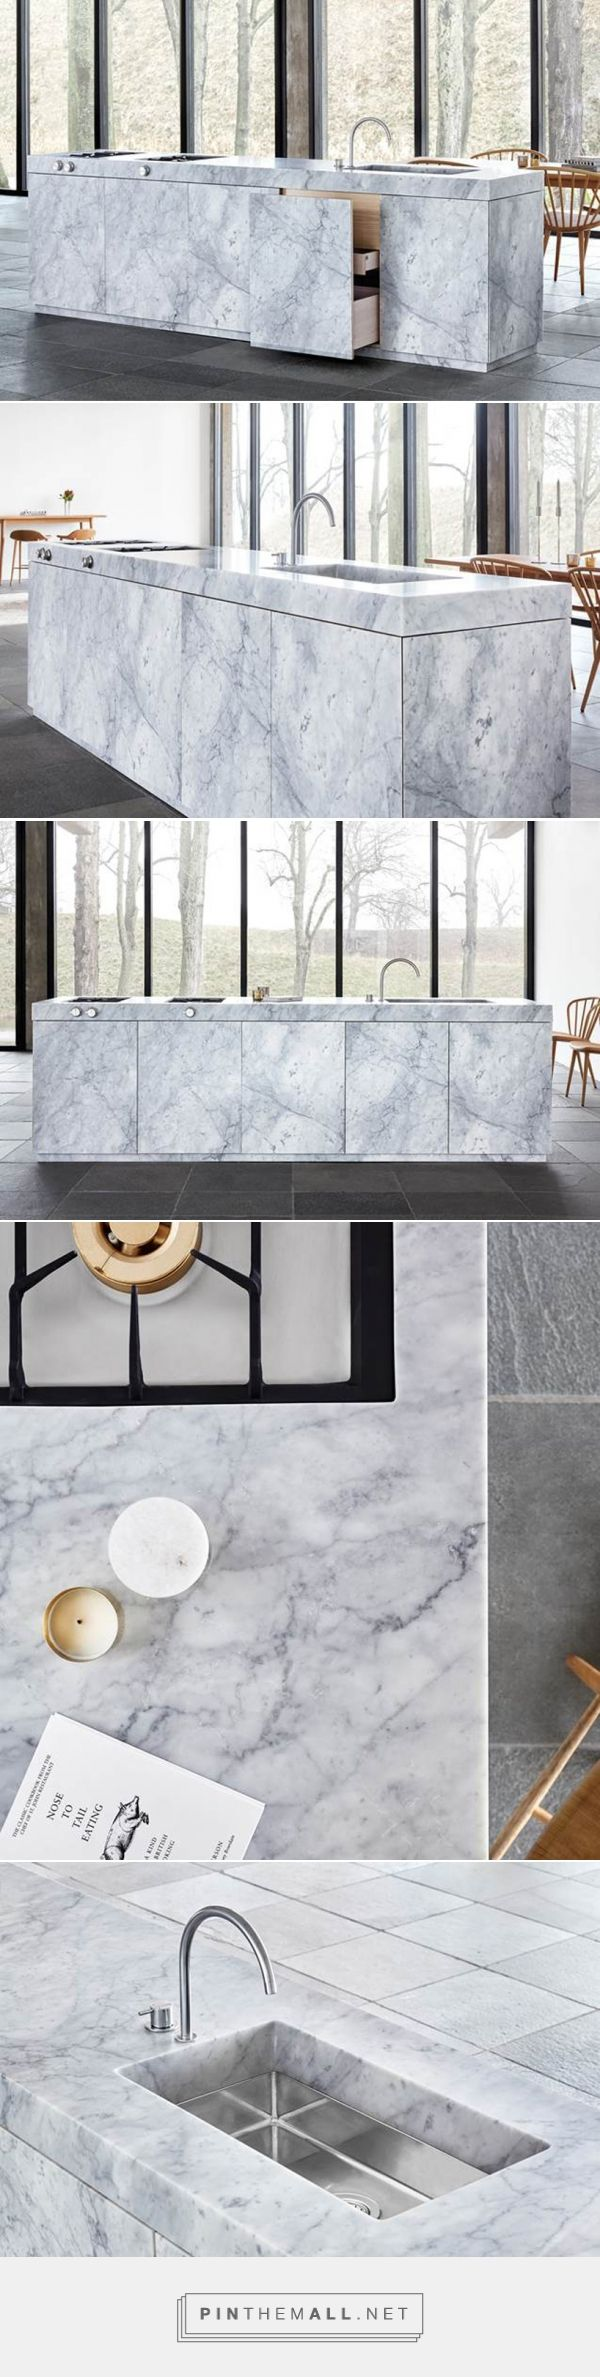 jonas lindvall presents marble kitchen concept for ballingslöv - created via https://pinthemall.net